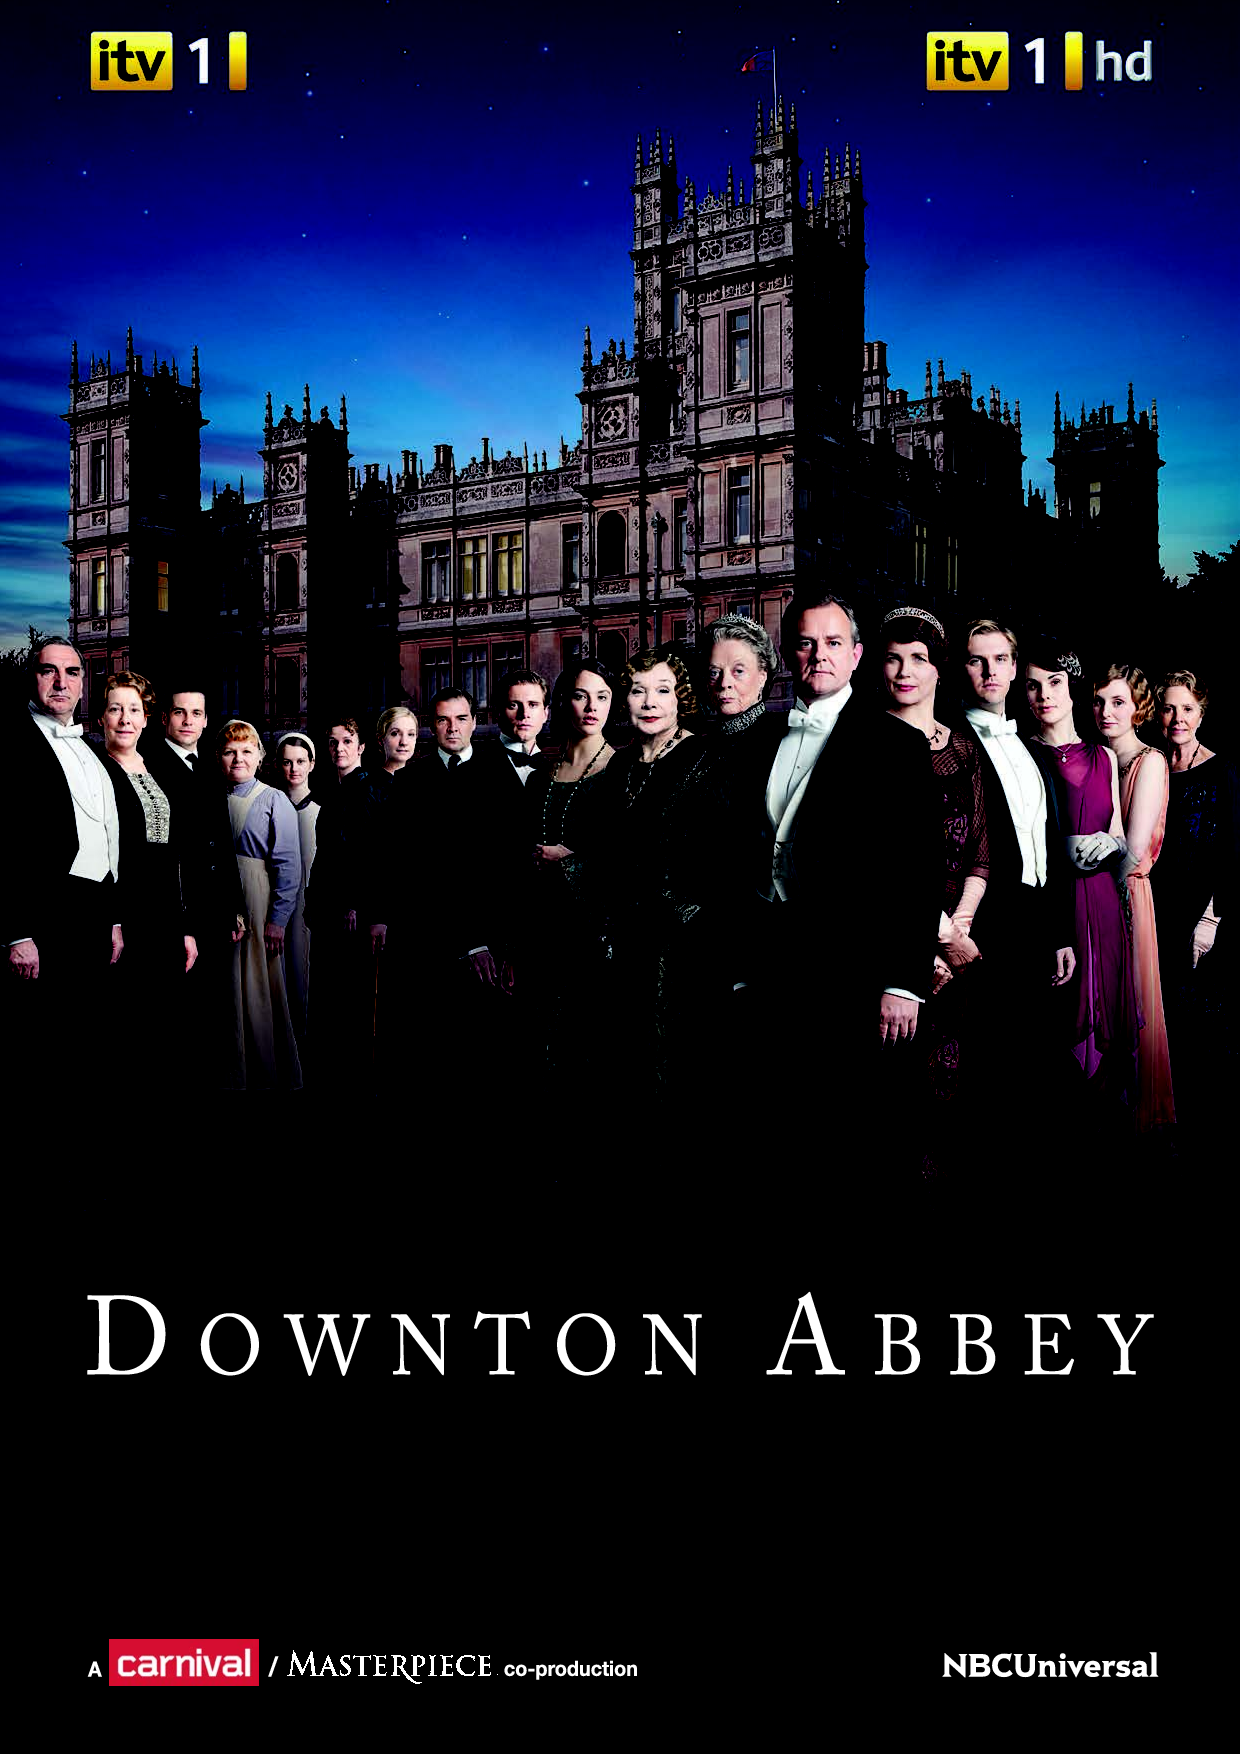 downton abbey season 3 in hd 720p